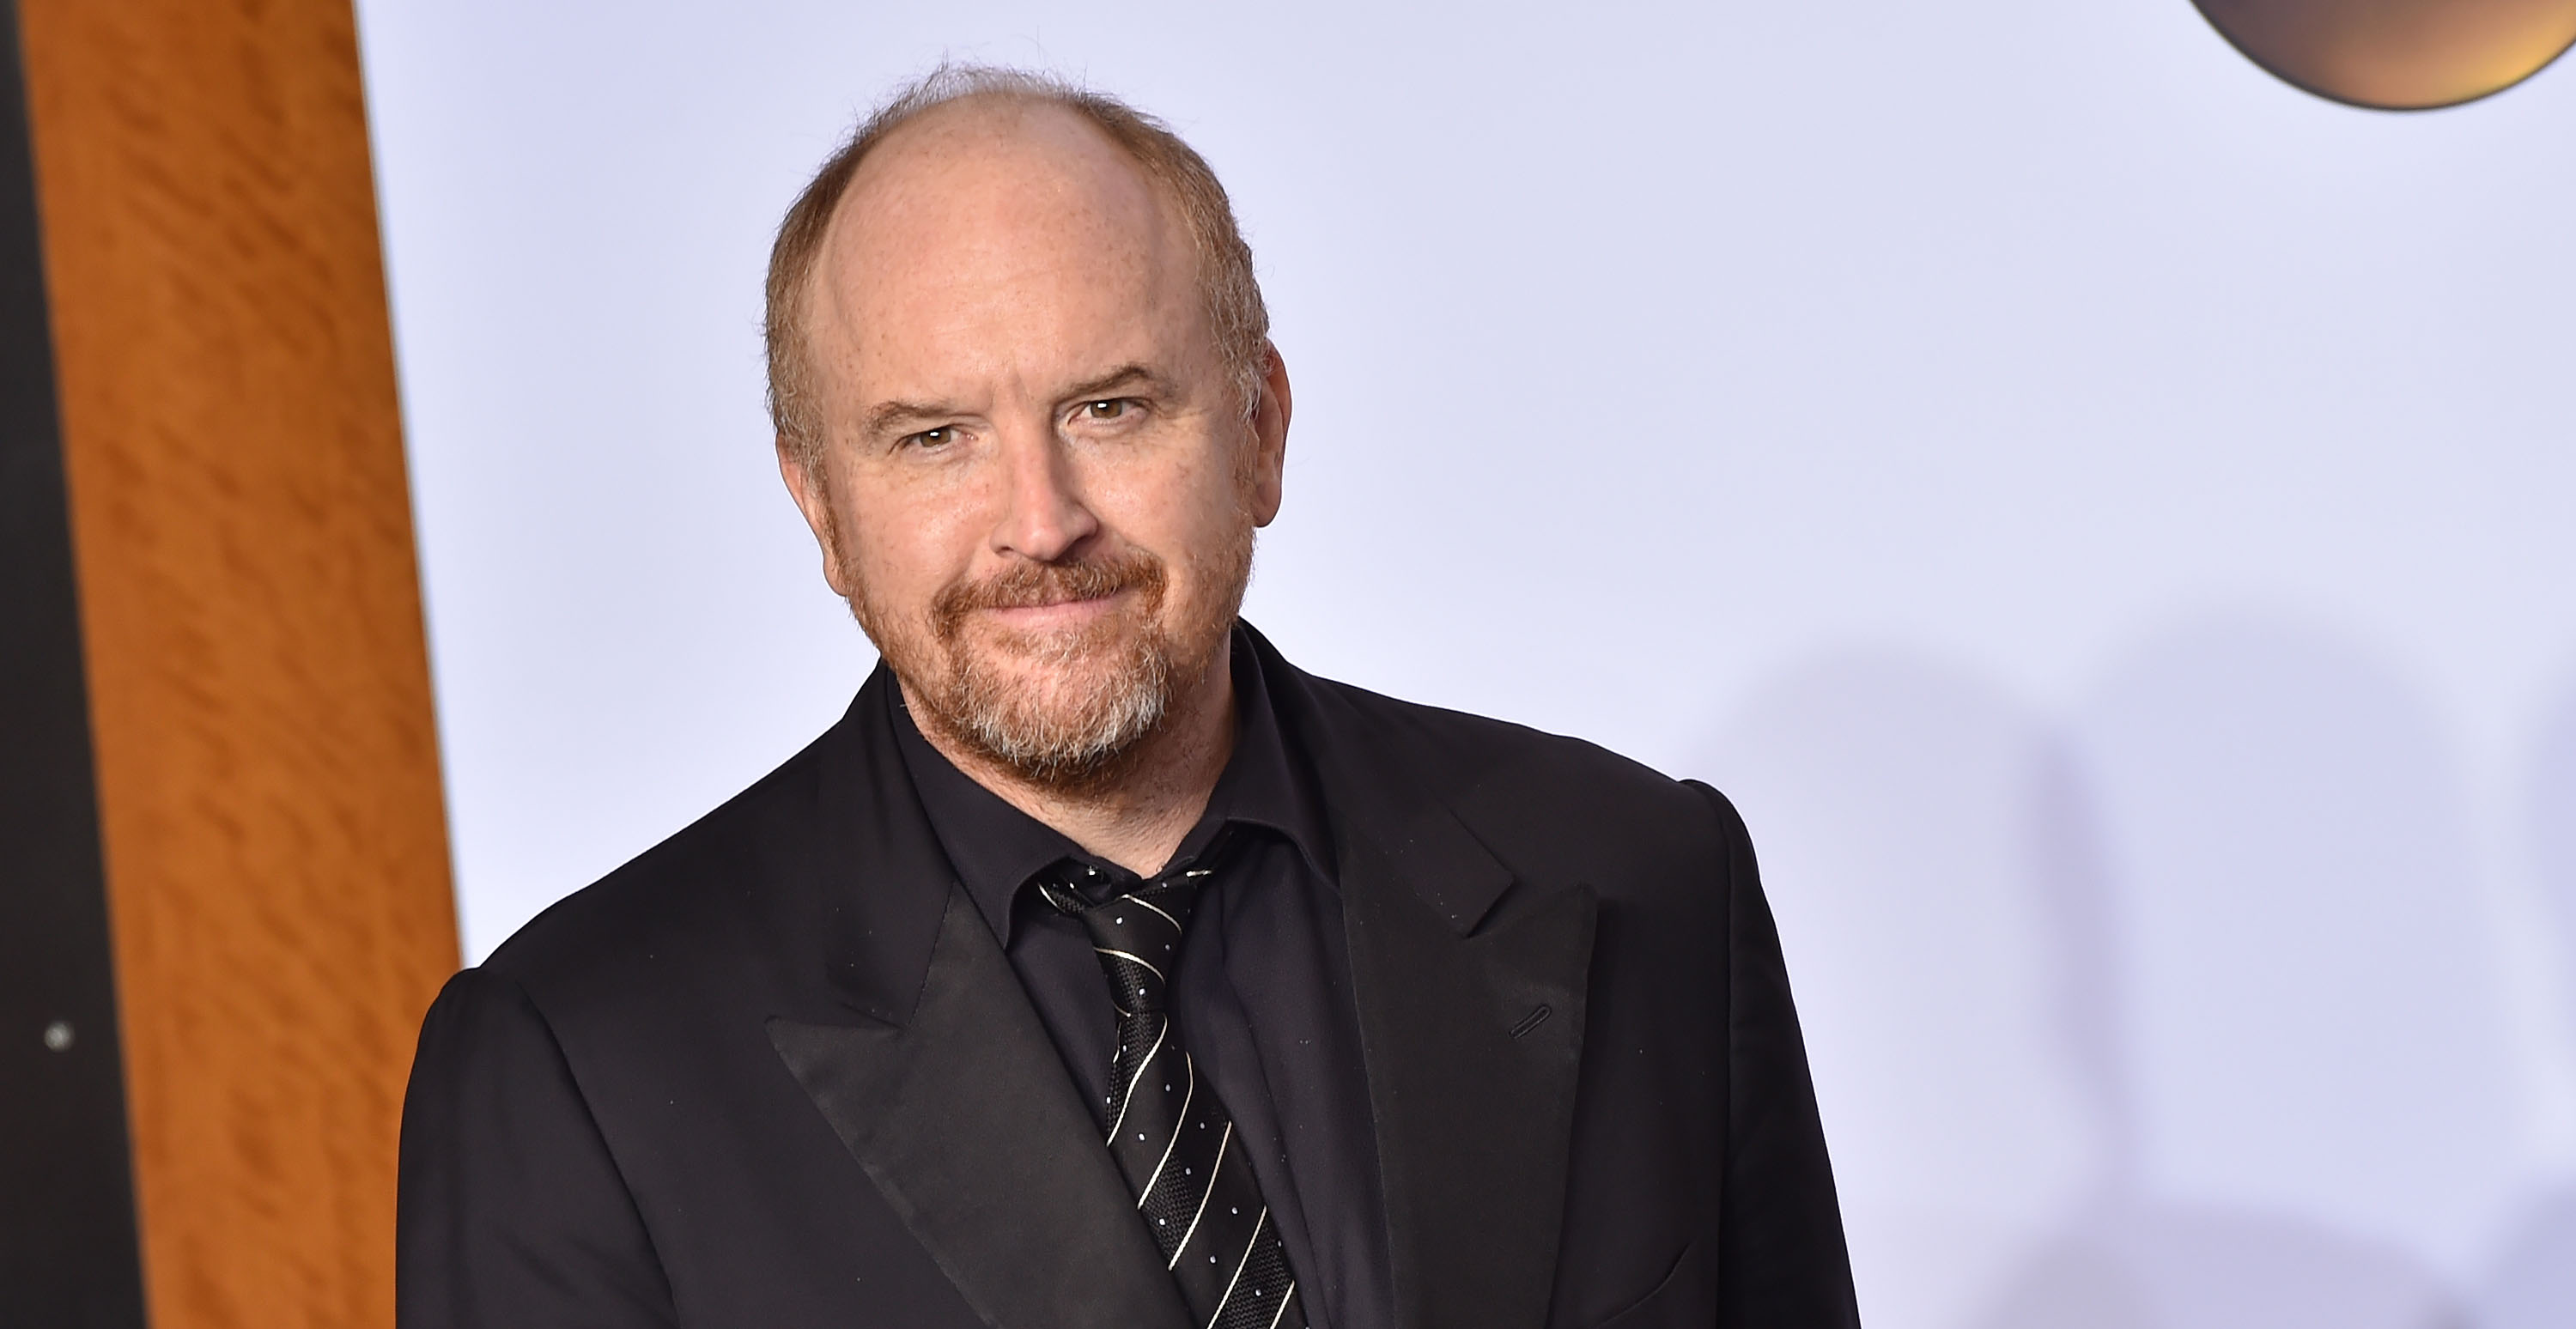 Louis C.K. at Hollywood & Highland Center on February 28, 2016 in Hollywood, California.